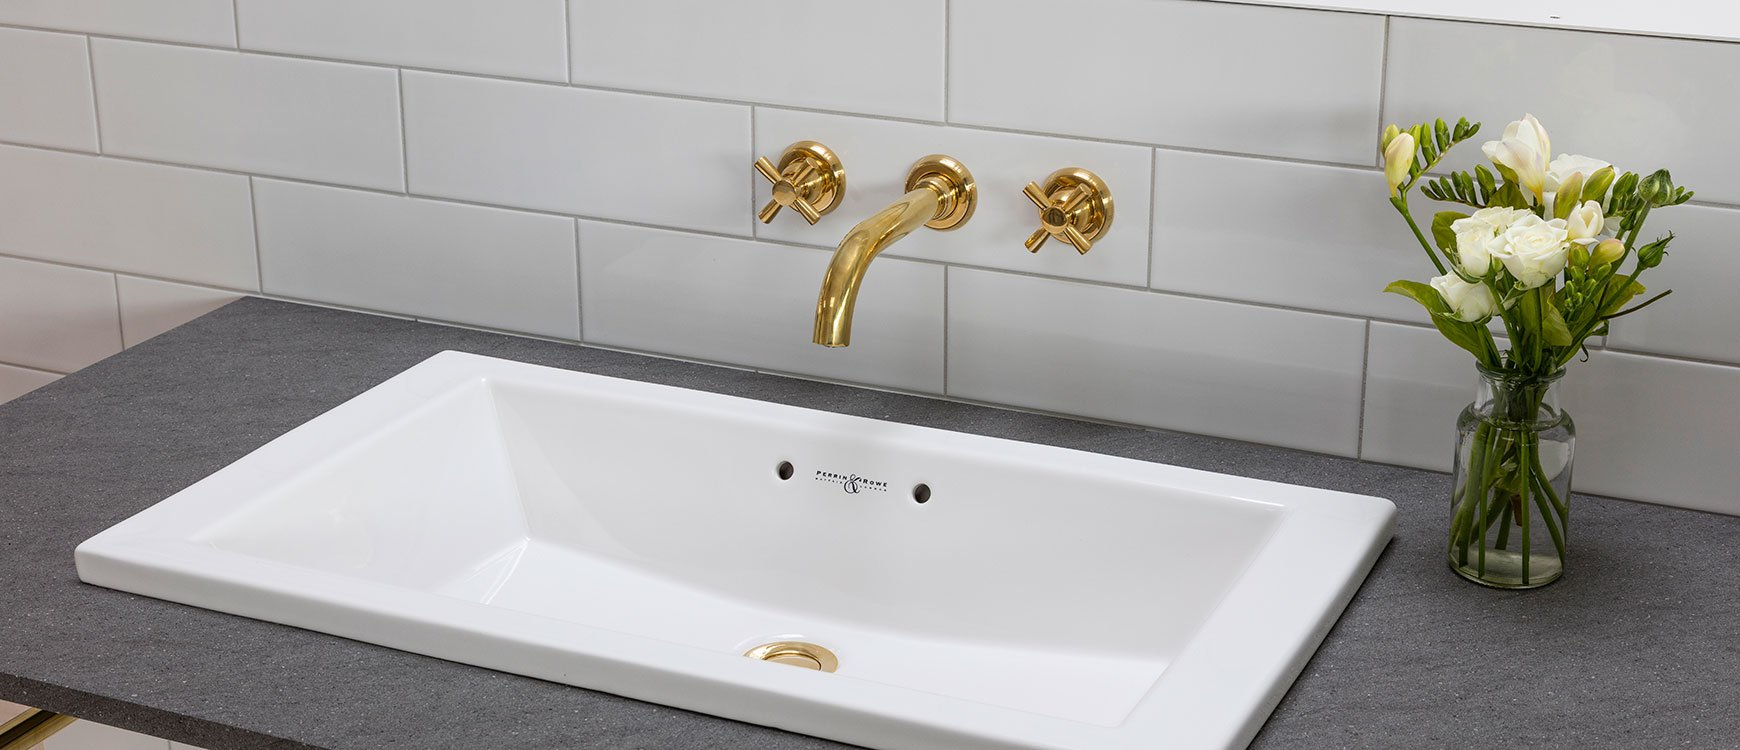 Best Quality Basin Taps Buy Bathroom Taps In Australia Online